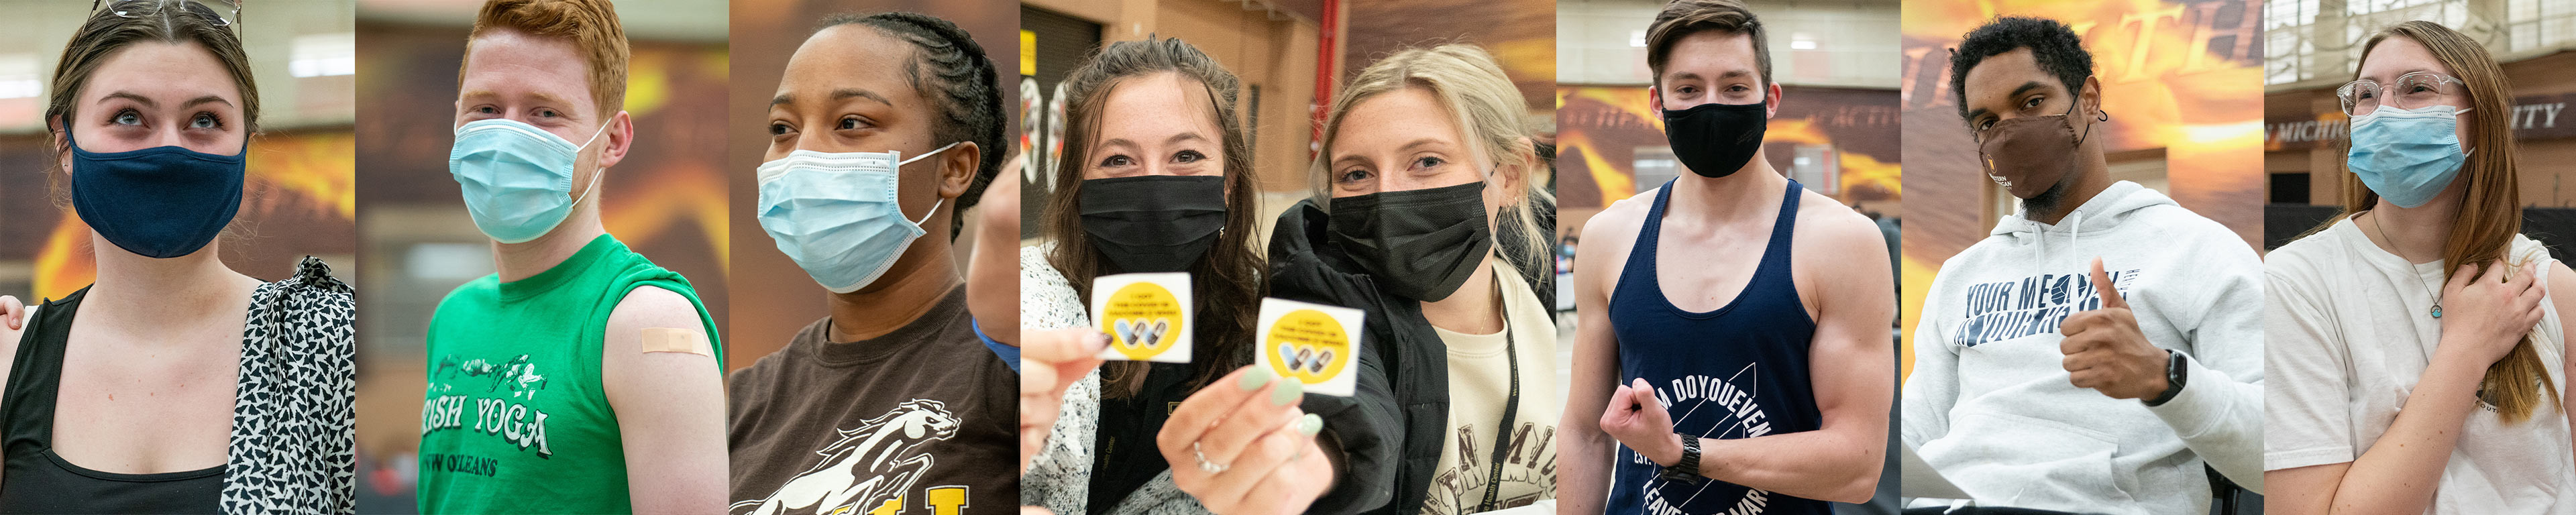 Eight WMU students wearing masks at a COVID-19 vaccination event.